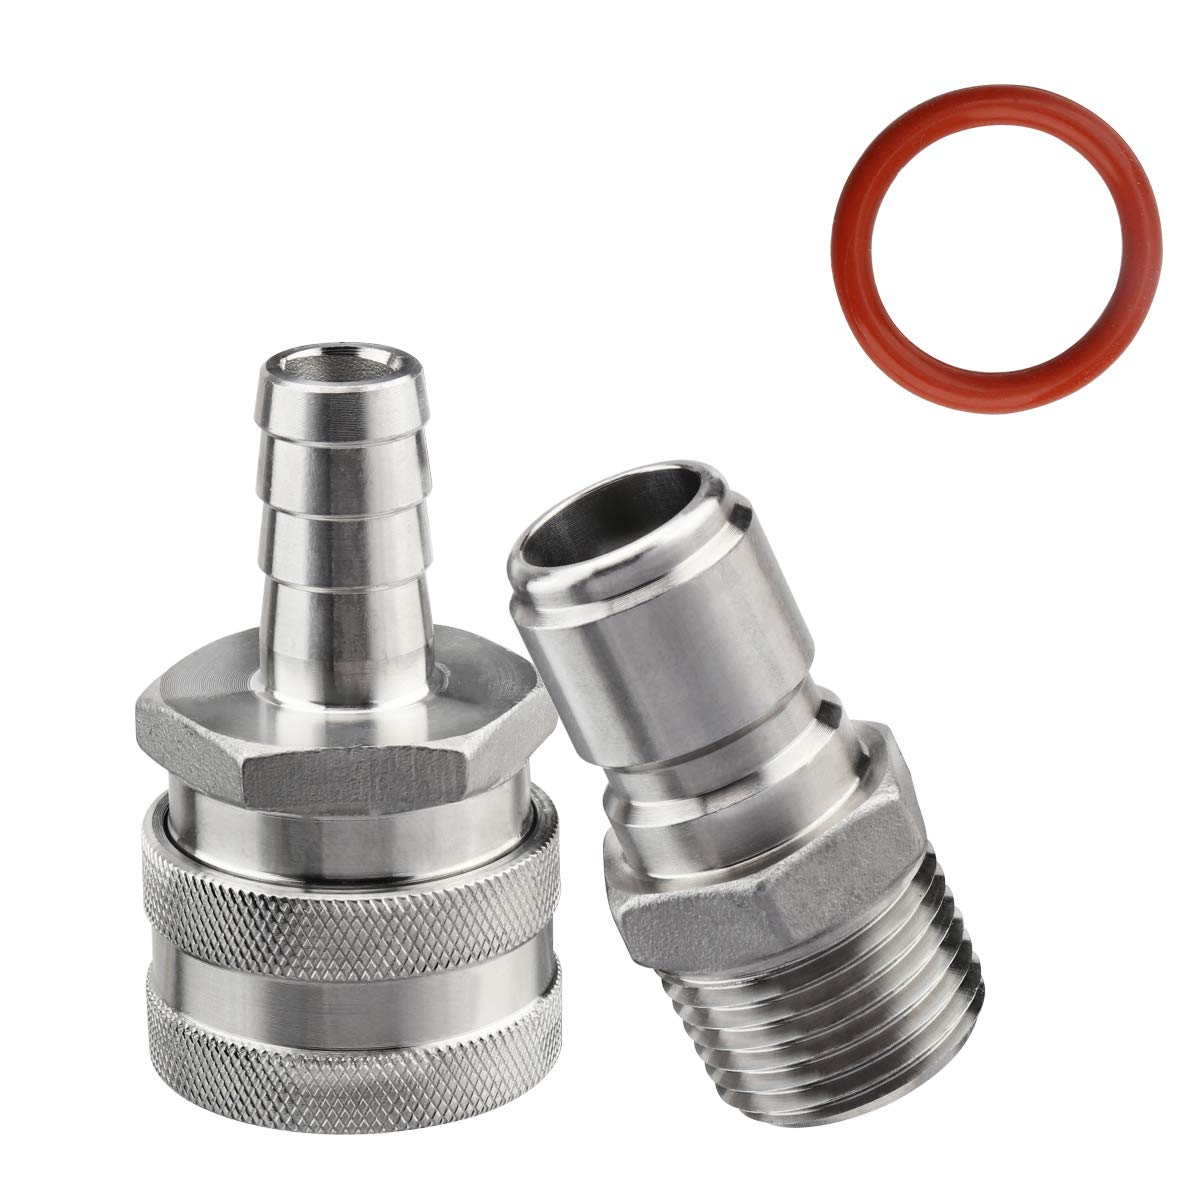 Ferroday Stainless Steel Quick Disconnect Set 1/2 NPT Male Disconnect 1/2'' Barb Brewing Quick Disconnect For Ball Valve (MFL, Nipple Fitting)